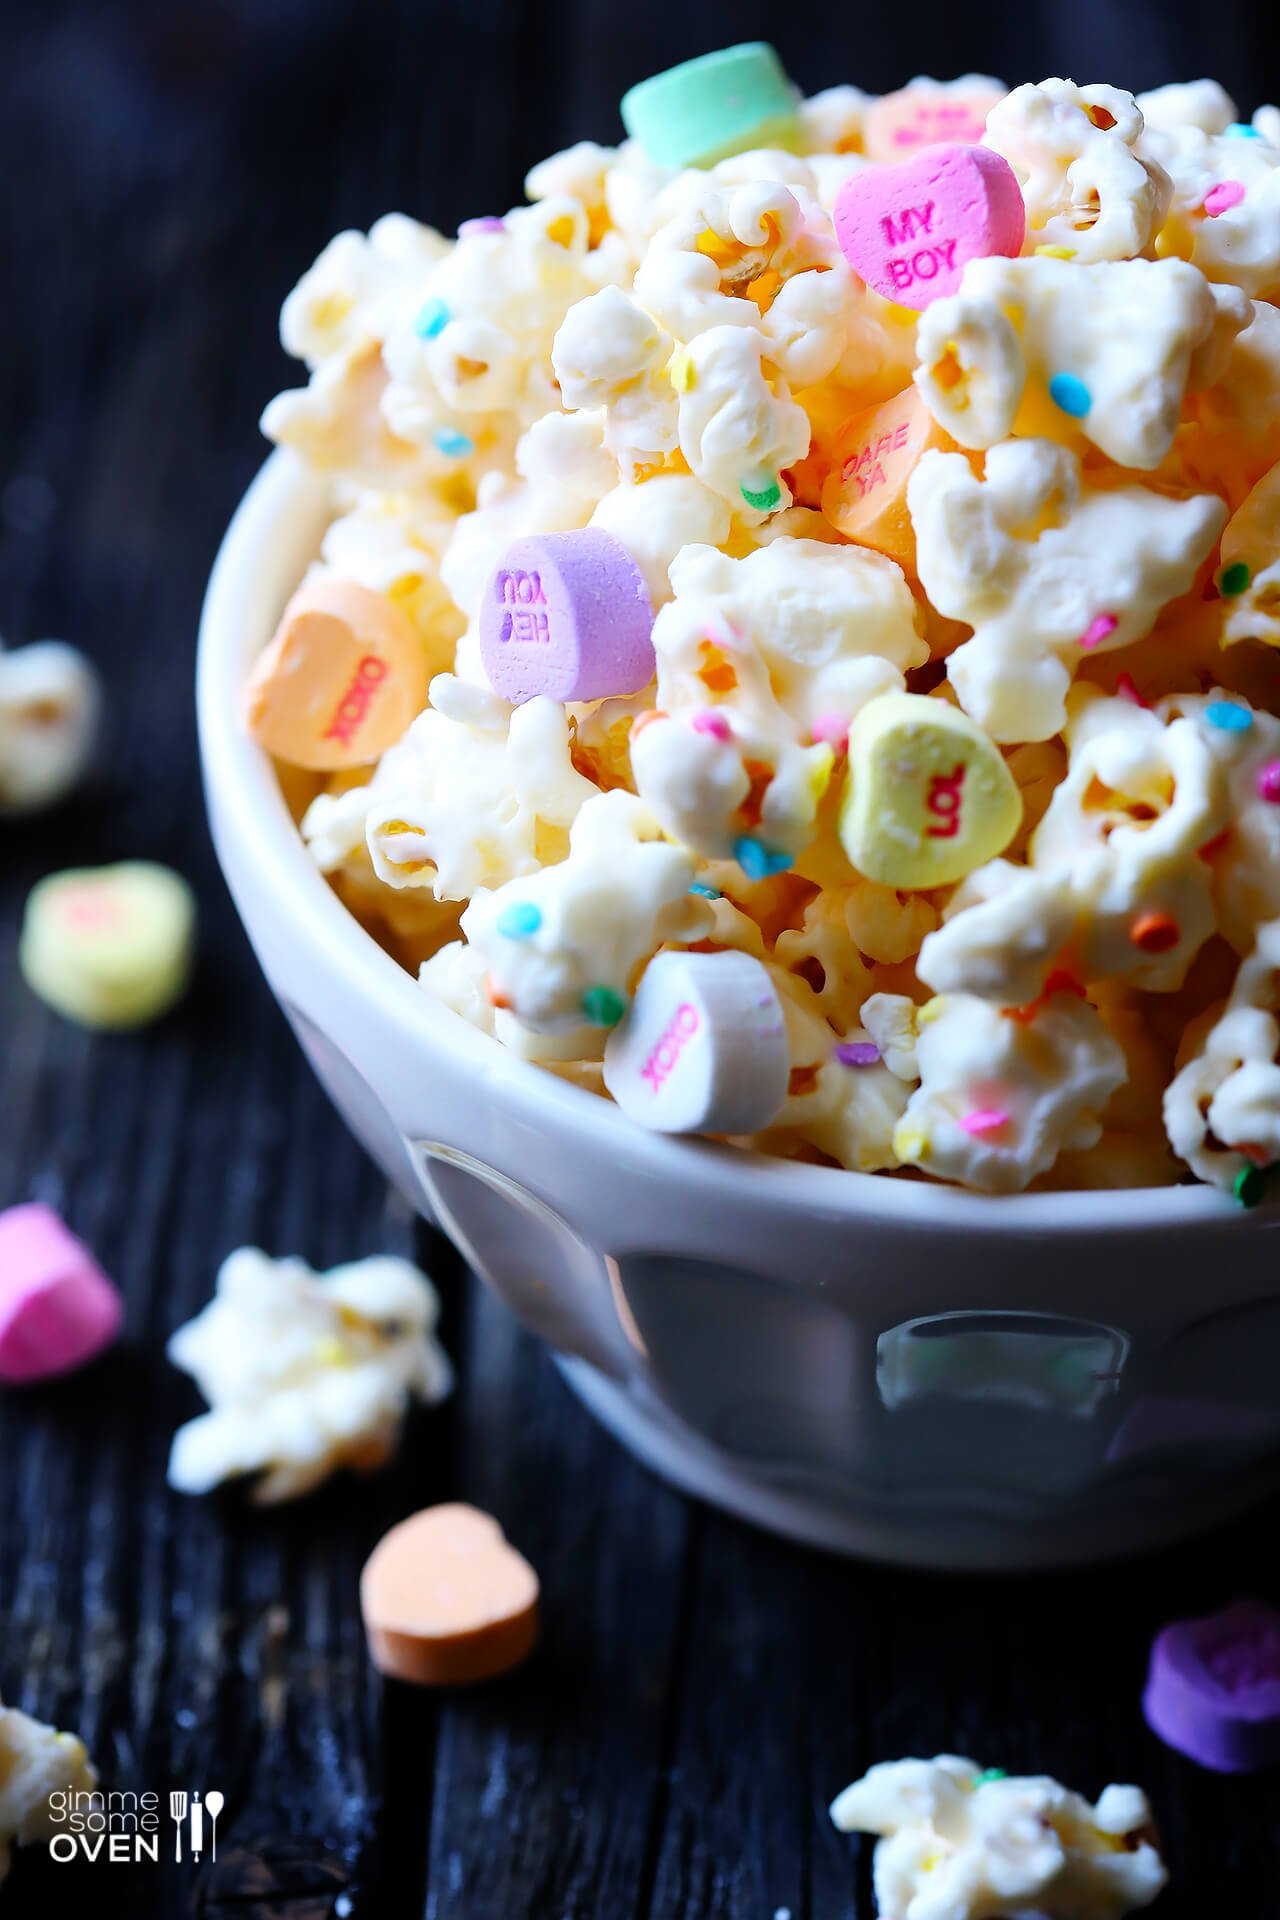 City Farmhouse - Valentine's Day Desserts White Chocolate Popcorn - Gimme Some Oven